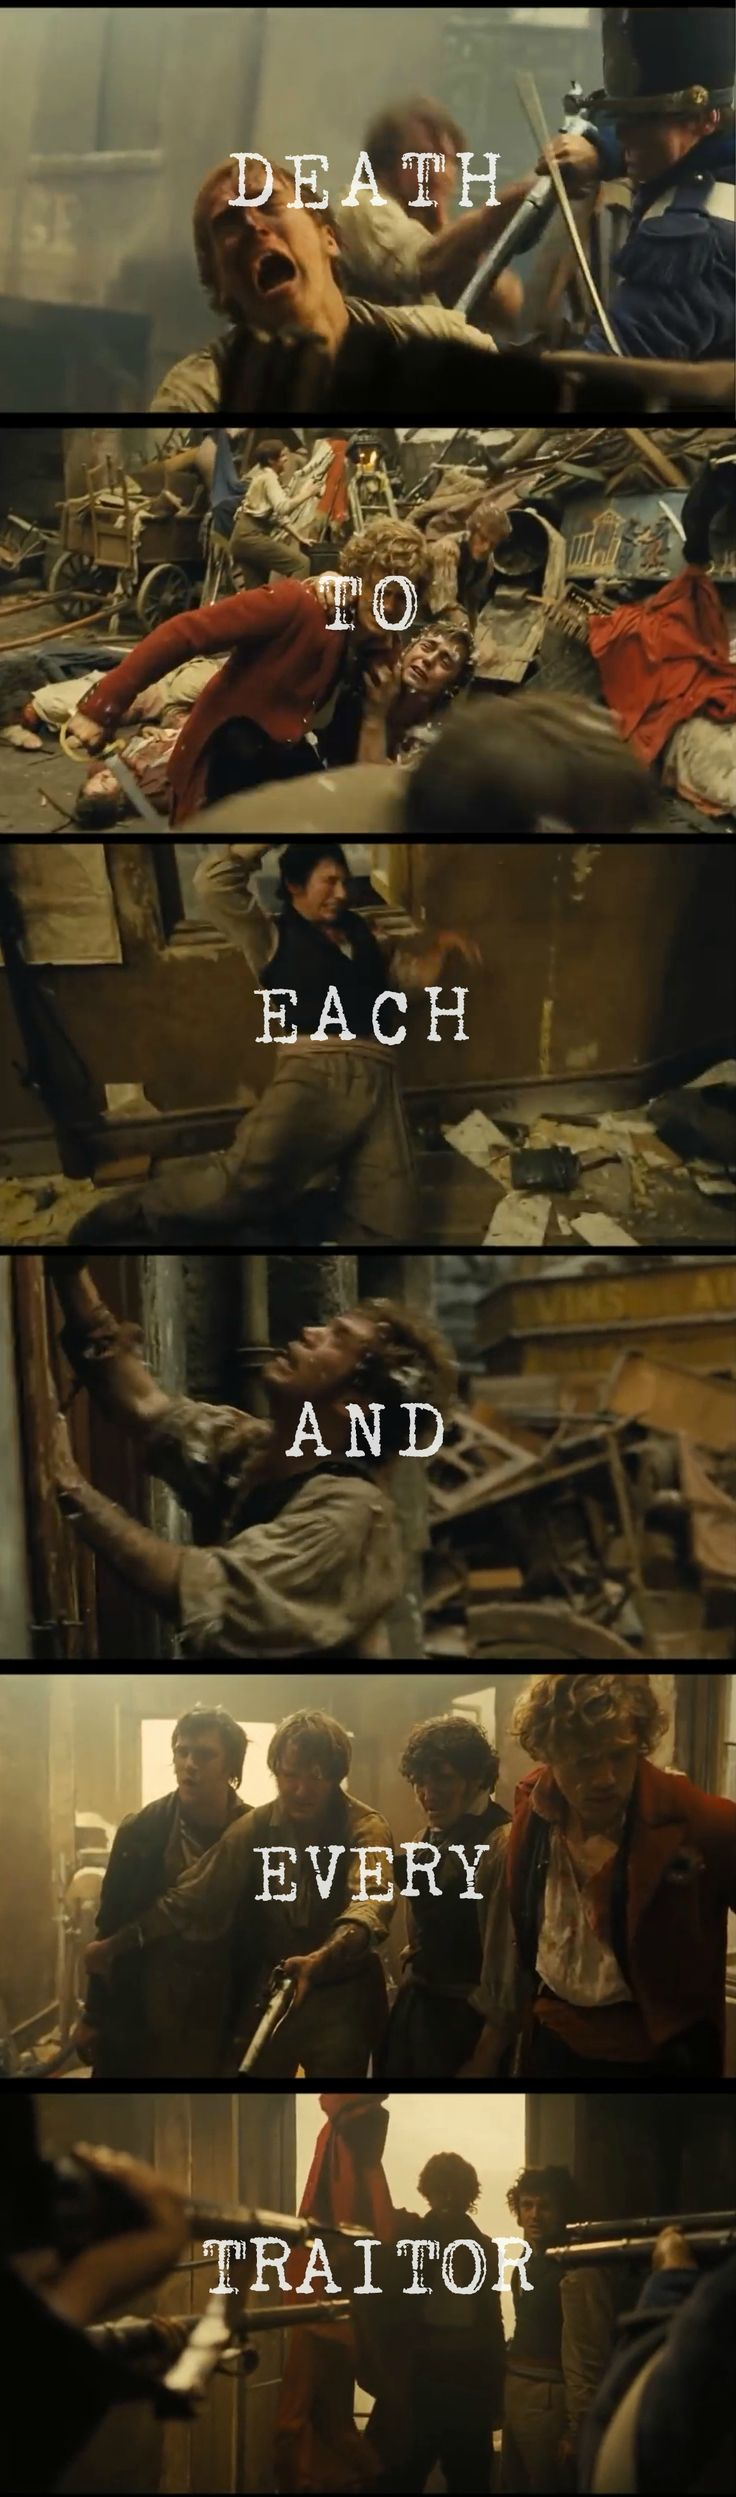 Death to each and every traitor | Les Amis de l'ABC | Les Miserables quote | i can't even describe my emotions now